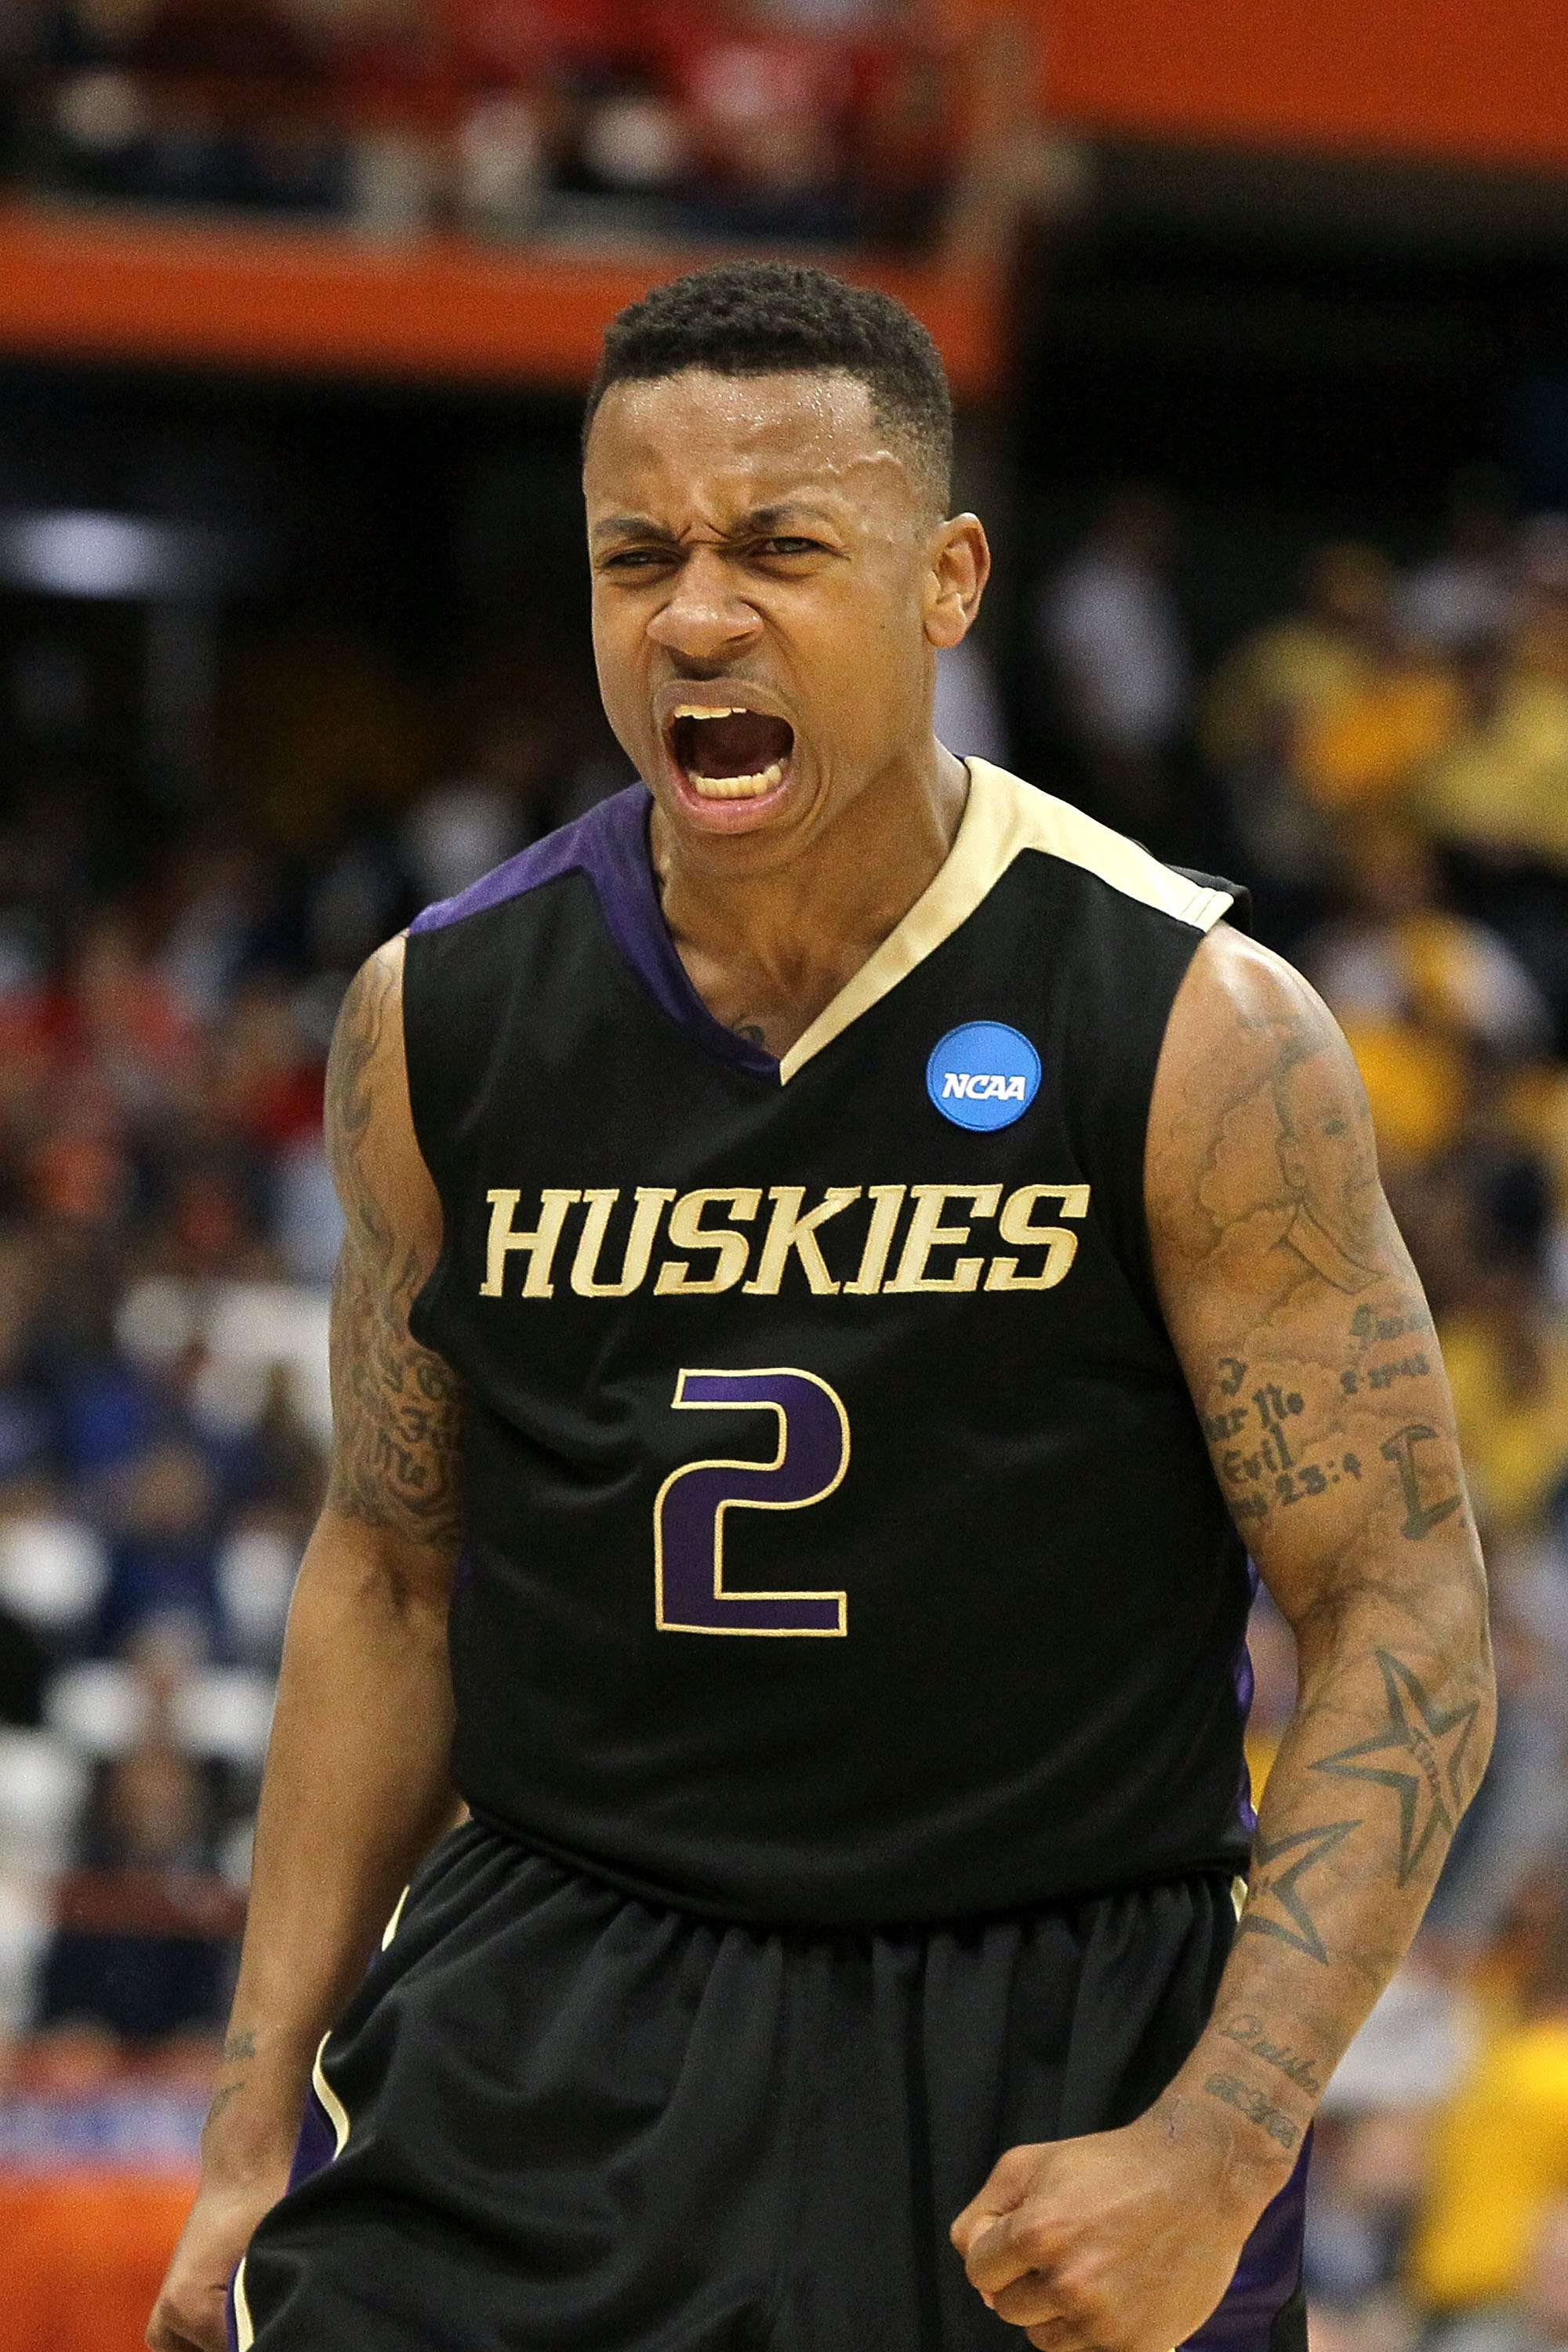 SYRACUSE, NY - MARCH 25:  Isaiah Thomas #2 of the Washington Huskies reacts against the West Virginia Mountaineers during the east regional semifinal of the 2010 NCAA men's basketball tournament at the Carrier Dome on March 25, 2010 in Syracuse, New York.